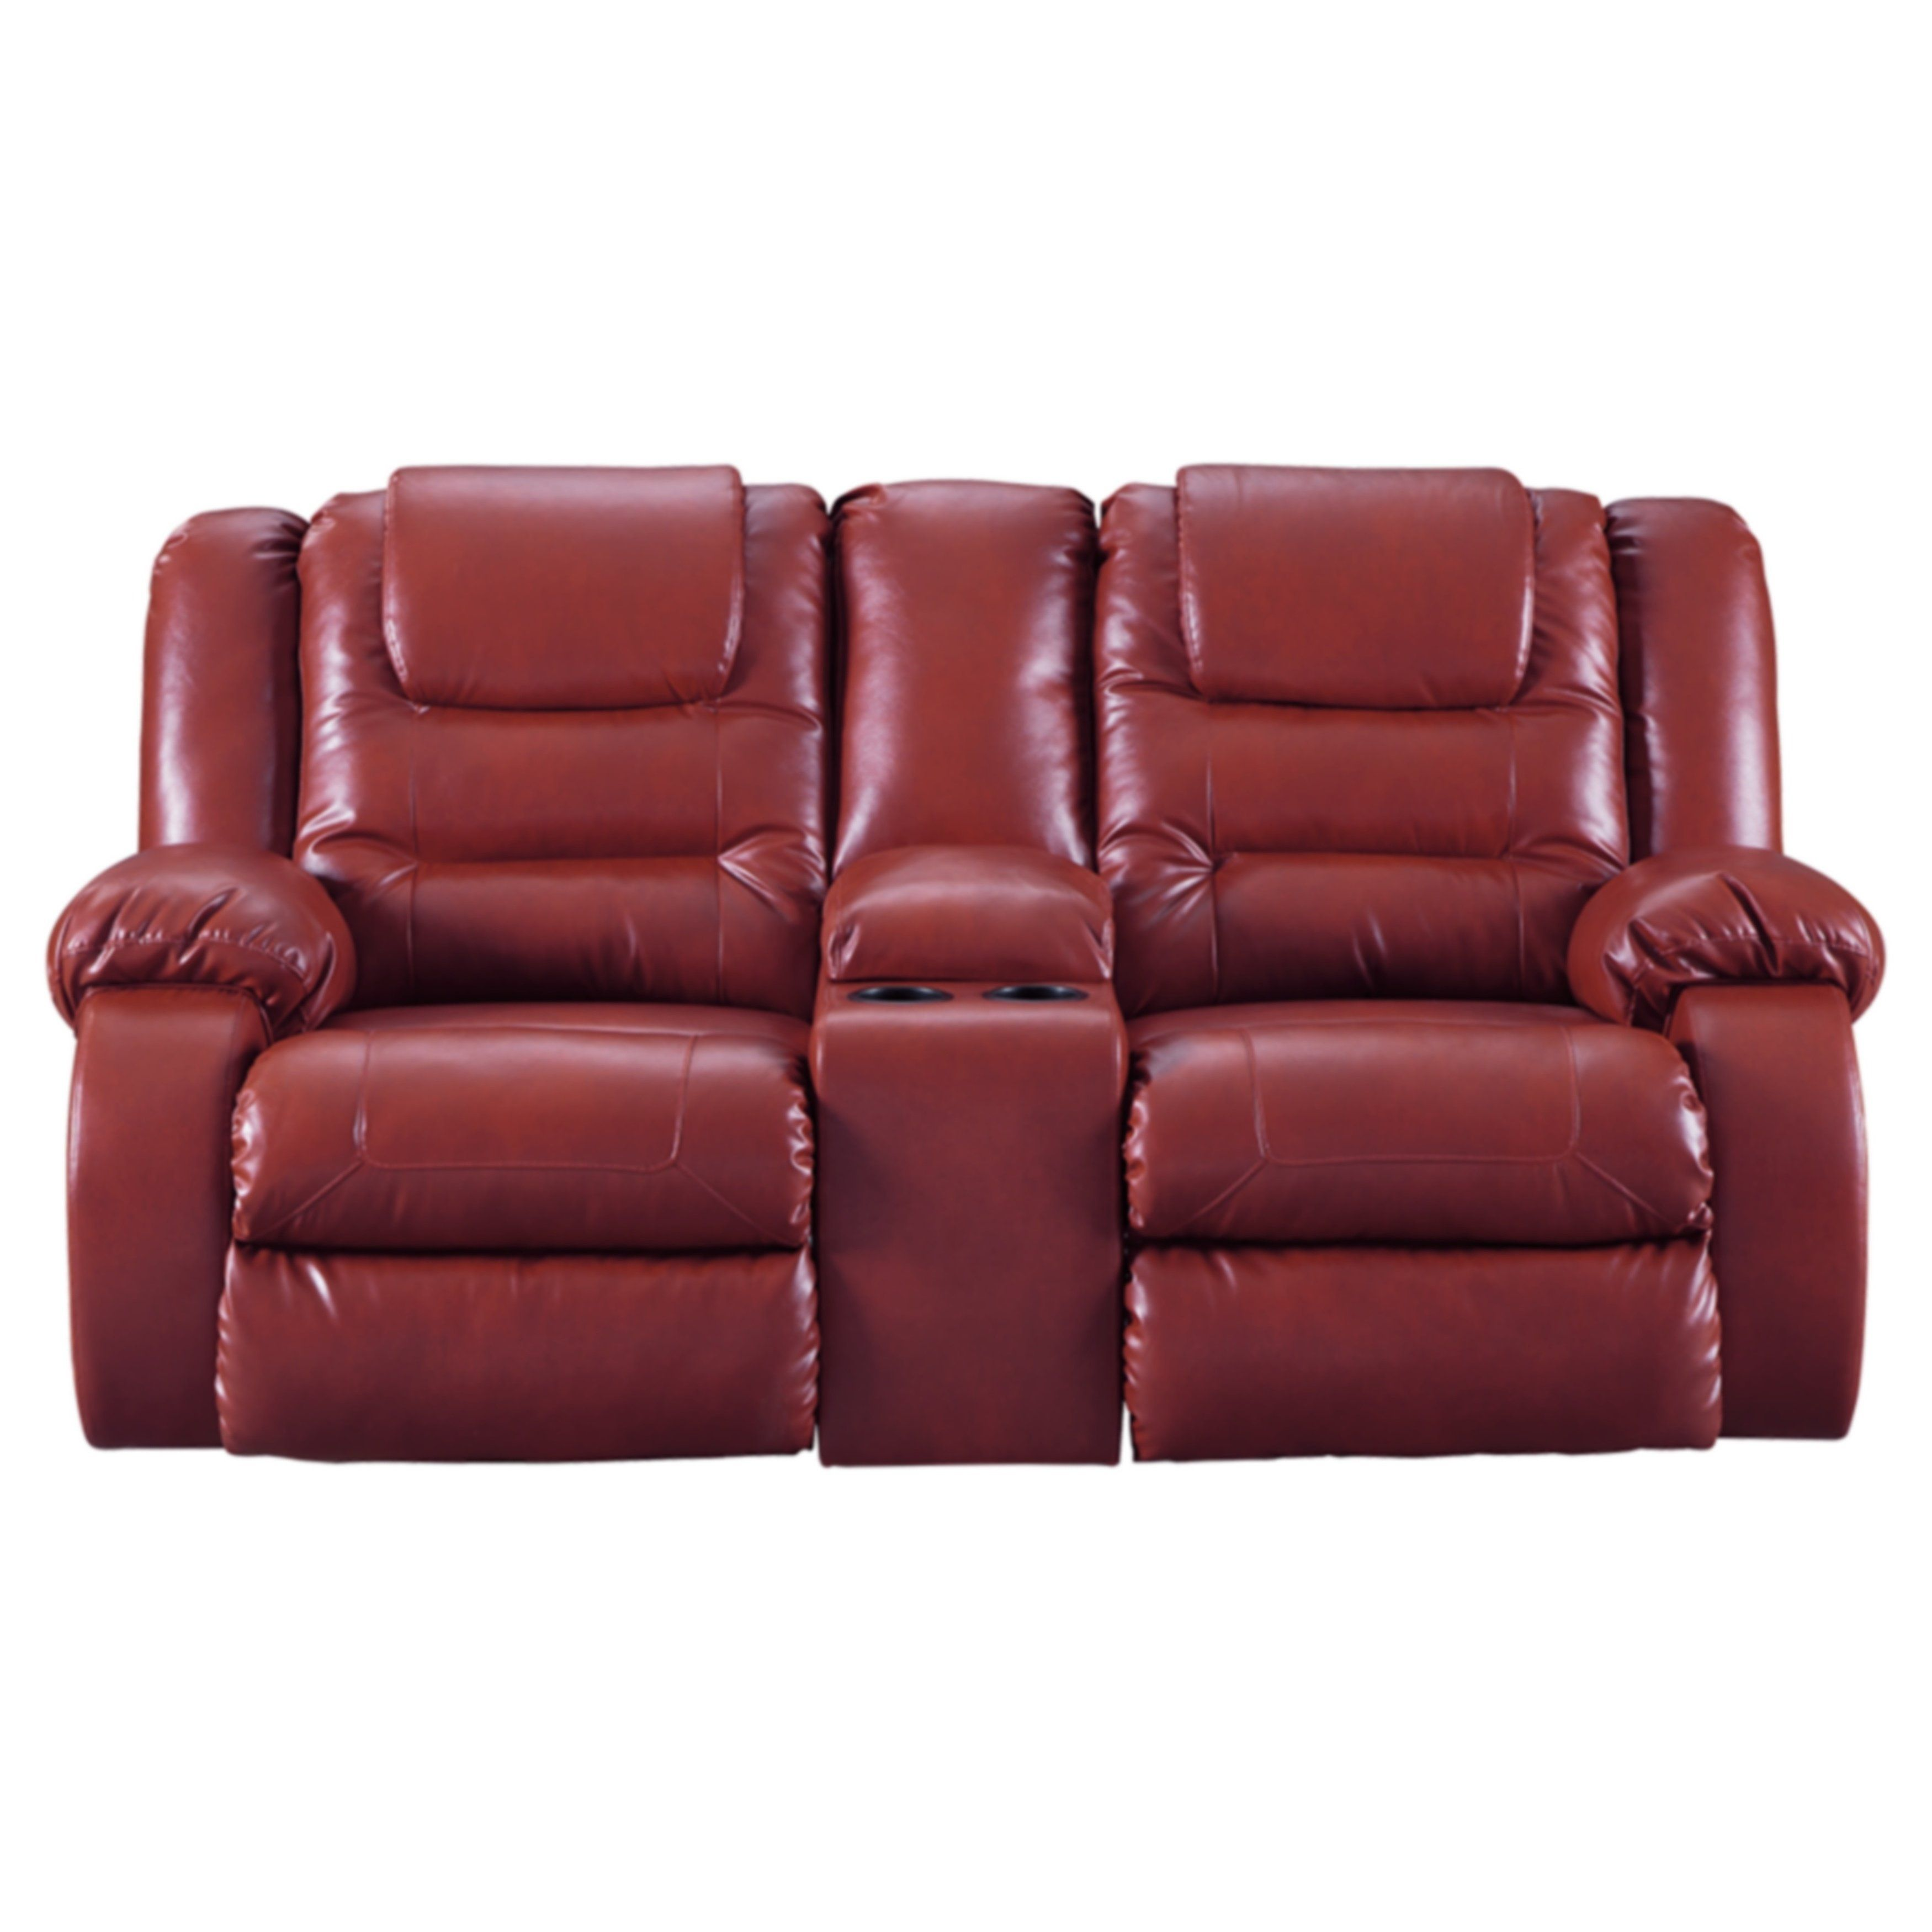 Signature Design By Ashley Salsa Vacherie Reclining Loveseat W Console Tight Back Assembled Round Arms Red Vacherie Recliner Leather Reclining Sofa